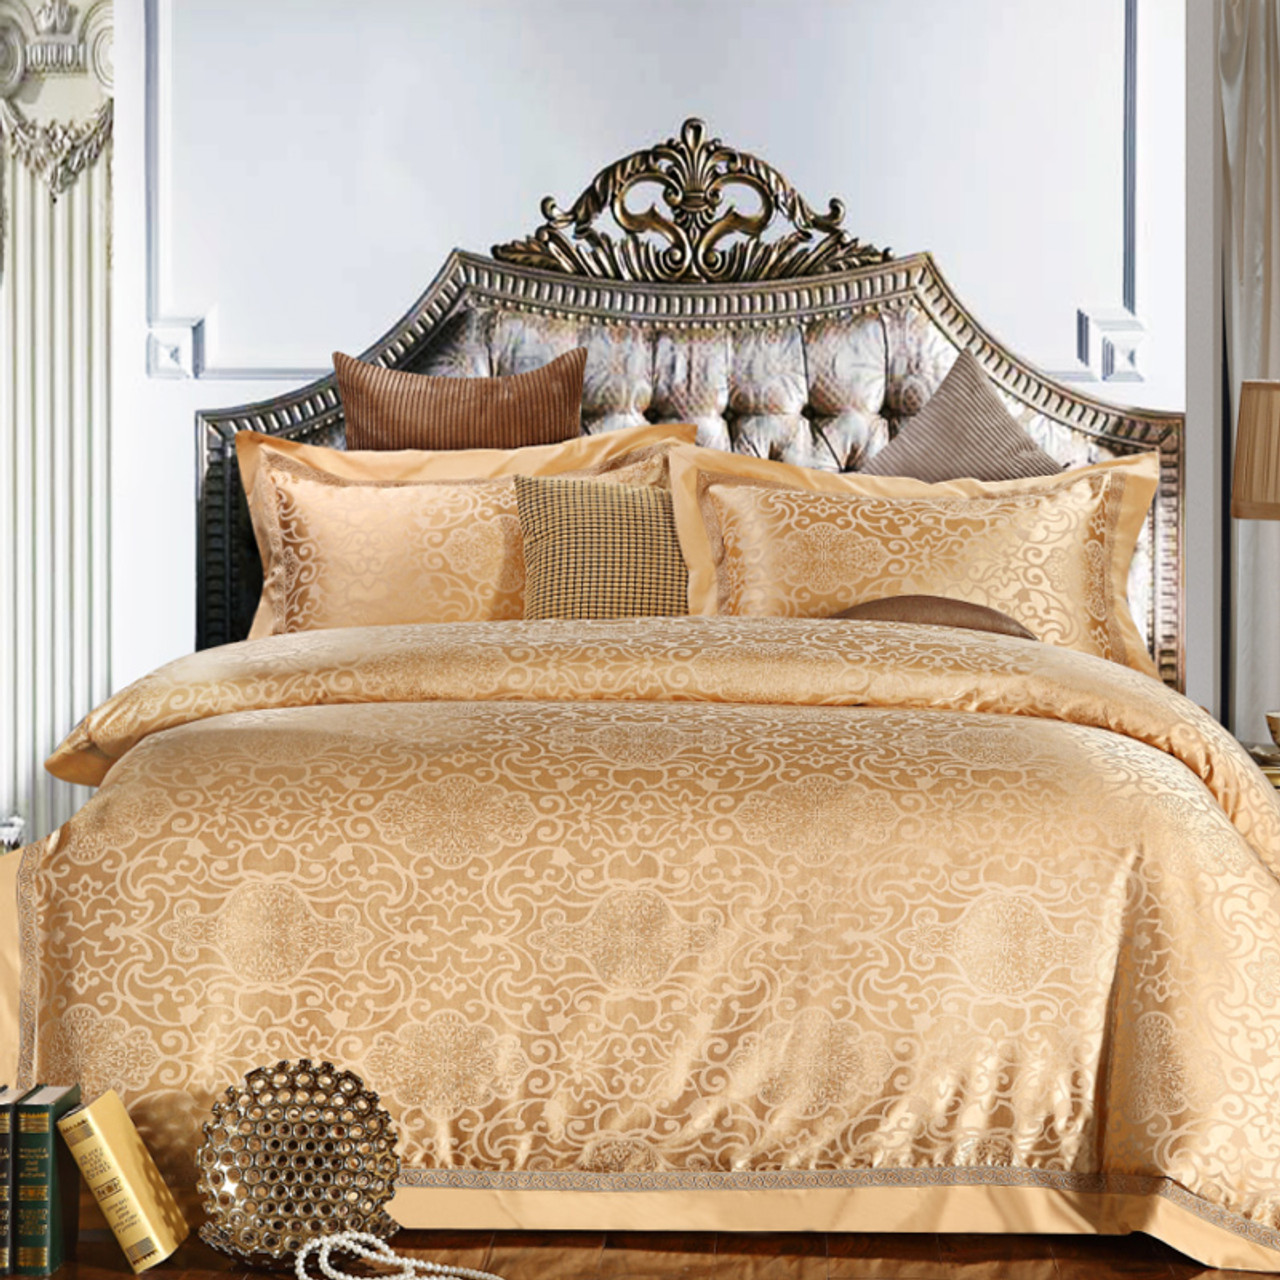 blue purple gold luxury jacquard bedding set cotton bed cover bed